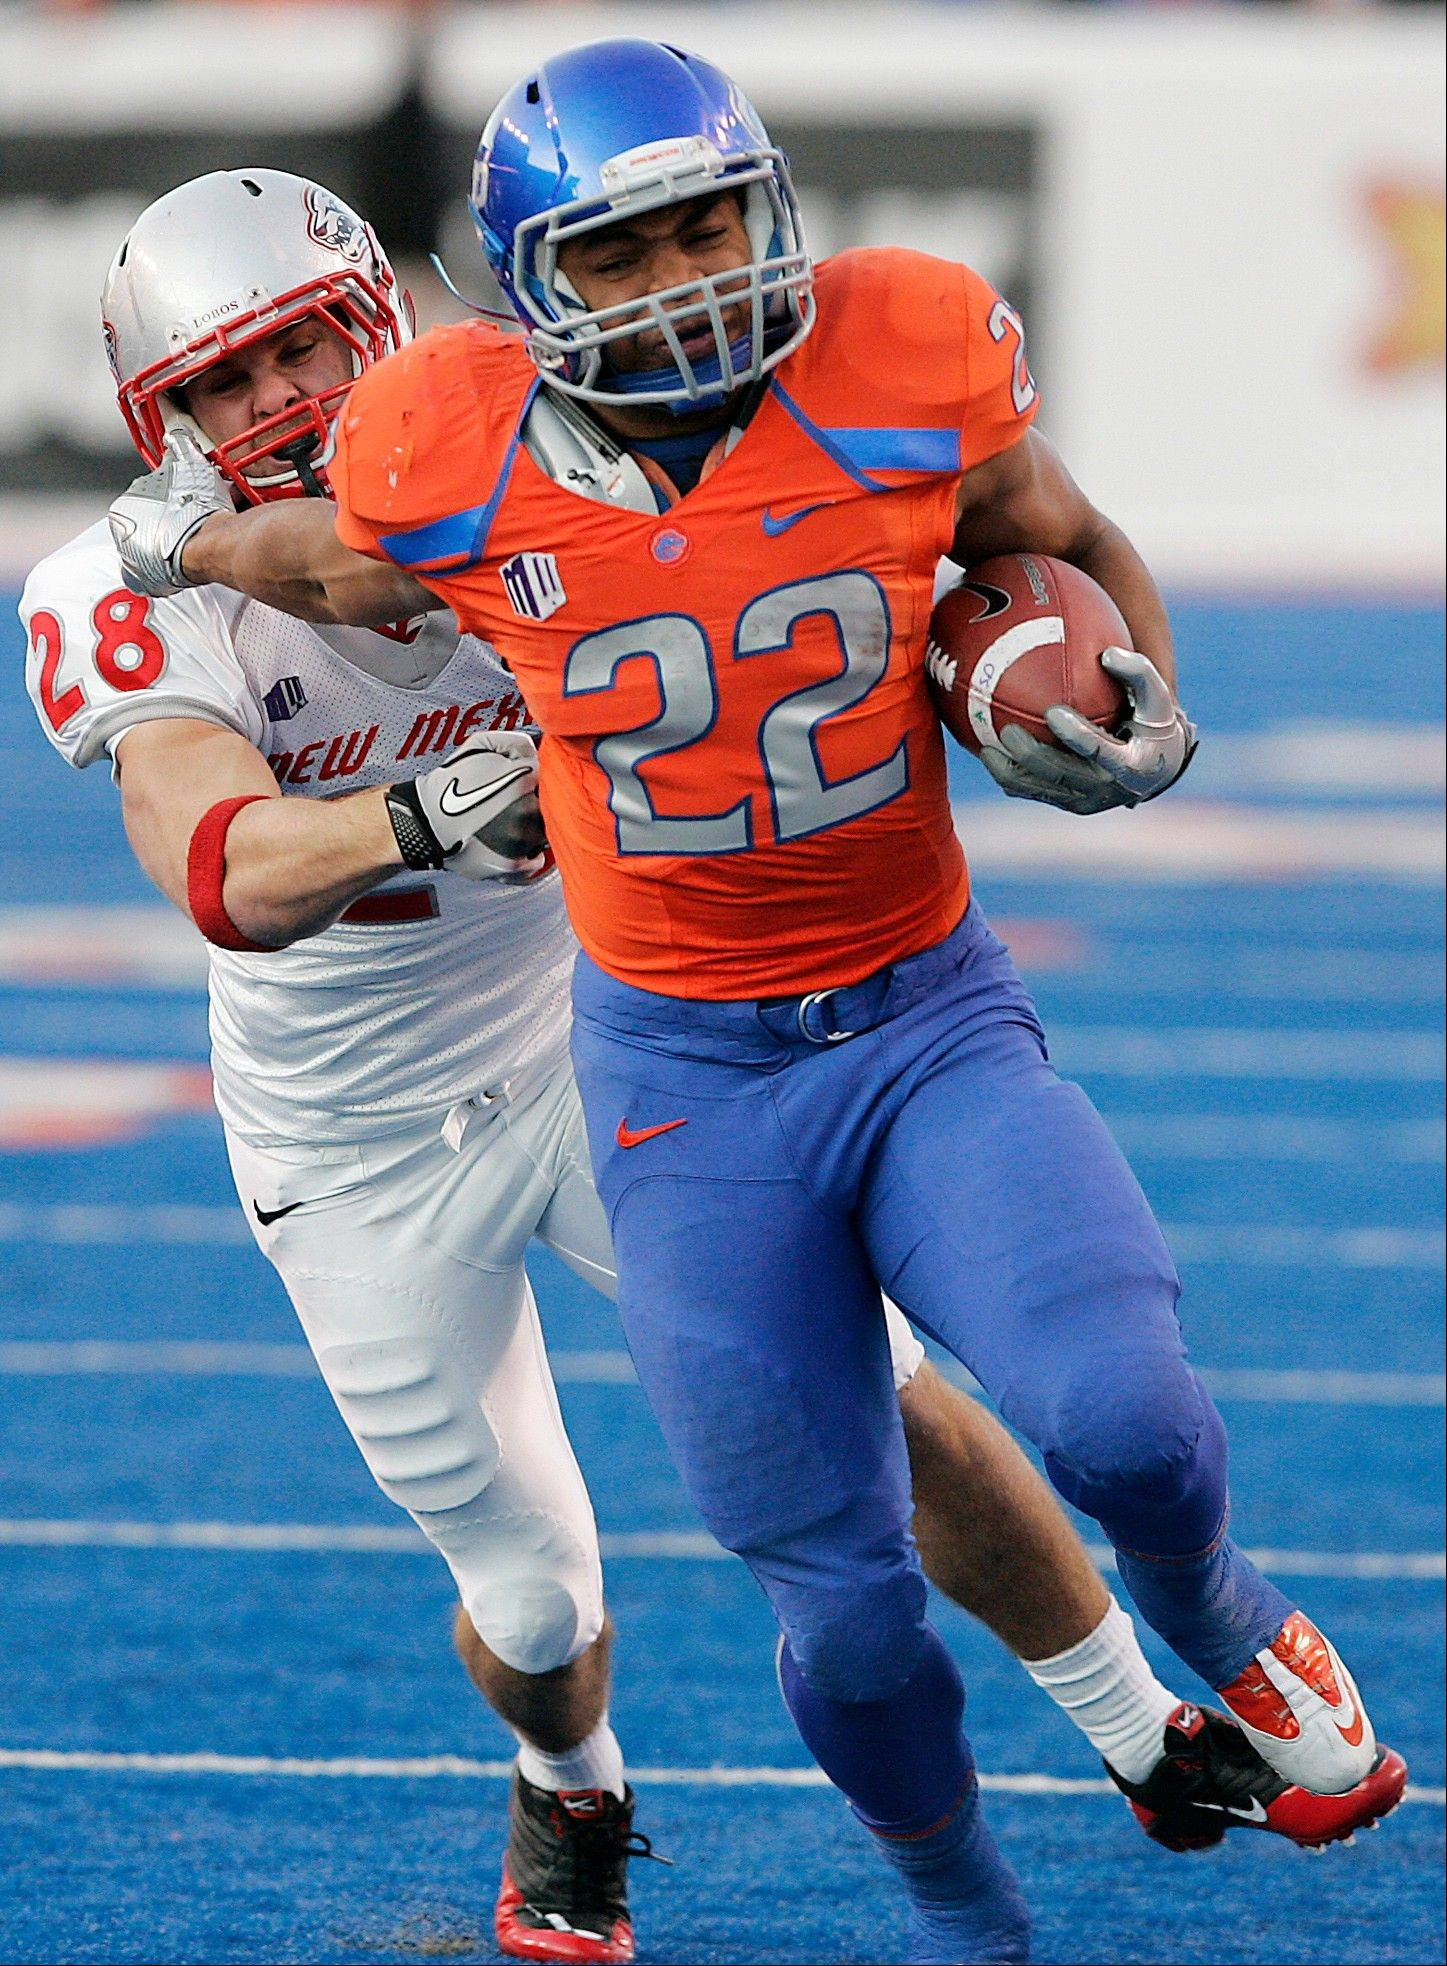 Boise State running back Doug Martin was selected as the 31st pick overall by the Tampa Bay Buccaneers in the first round of the NFL NFL Draft at Radio City Music Hall.